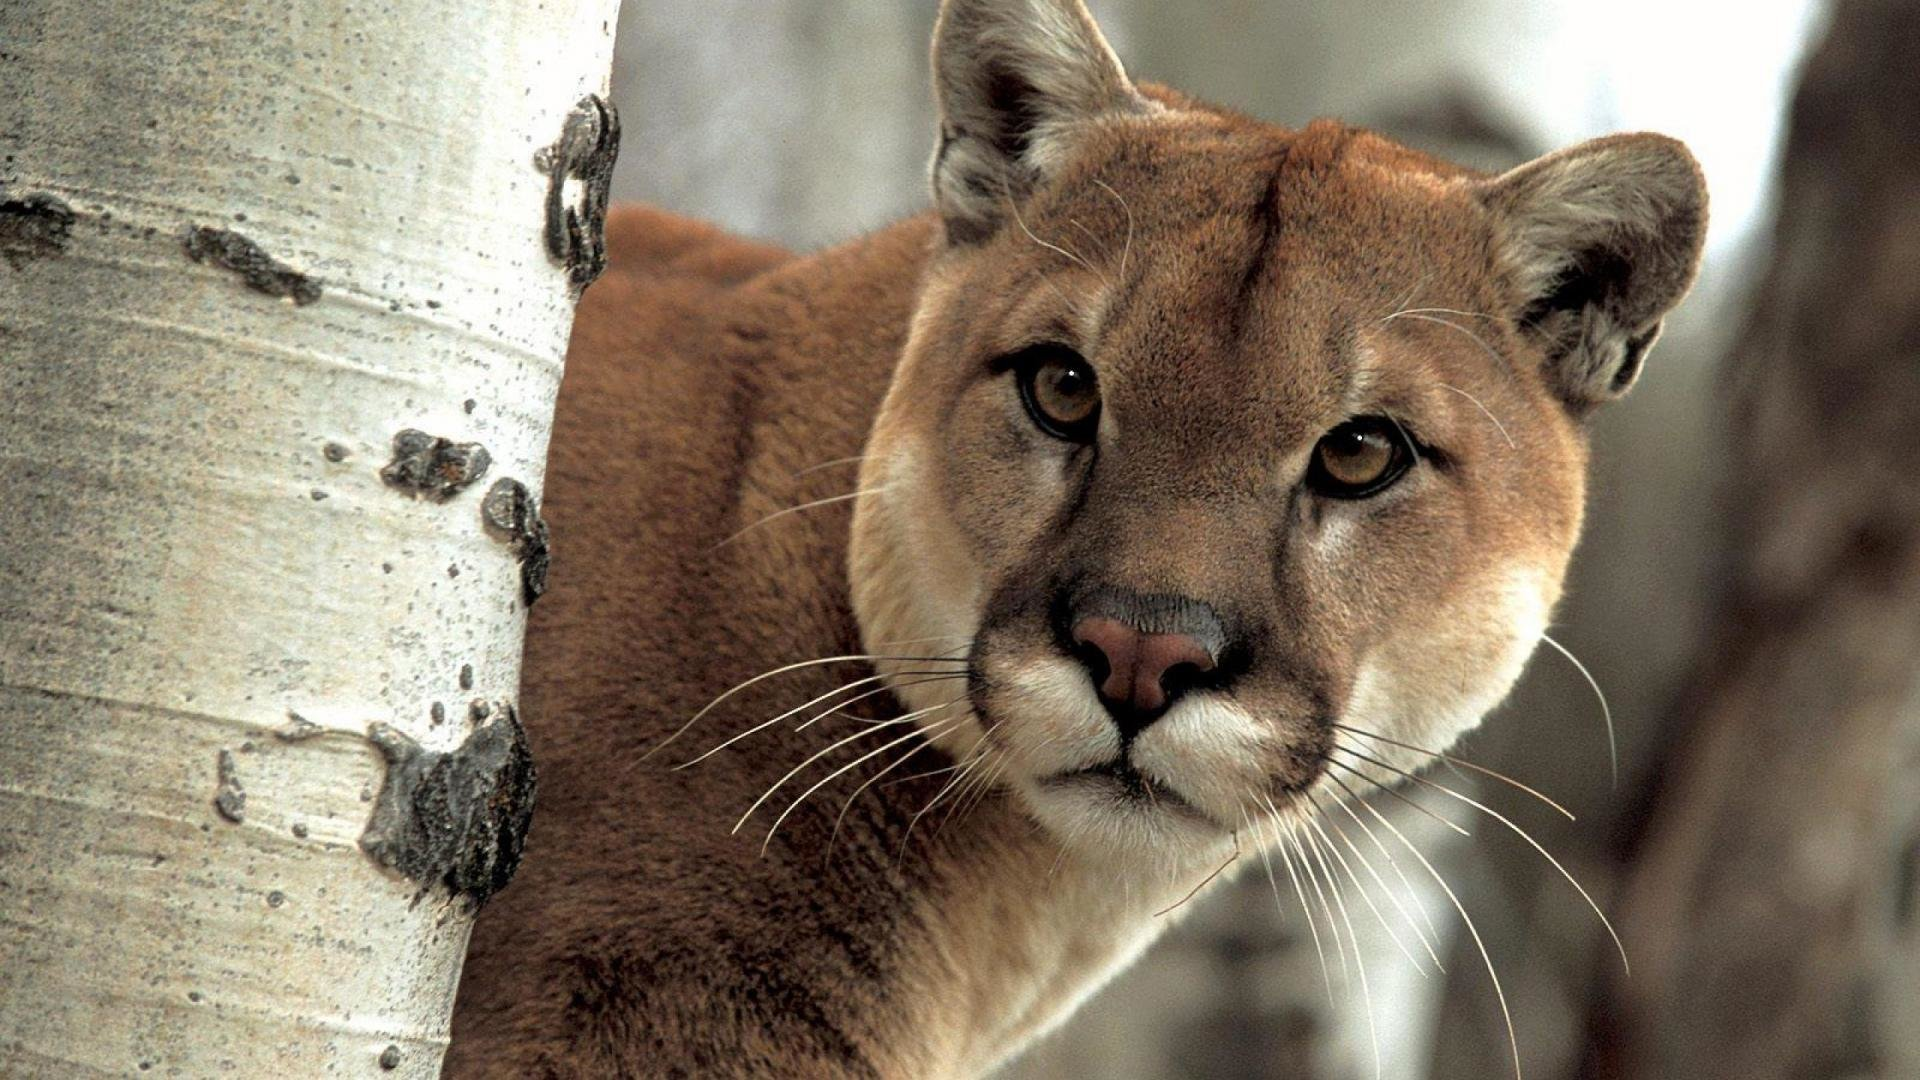 Free download Cougar wallpaper ID:81697 full hd for desktop